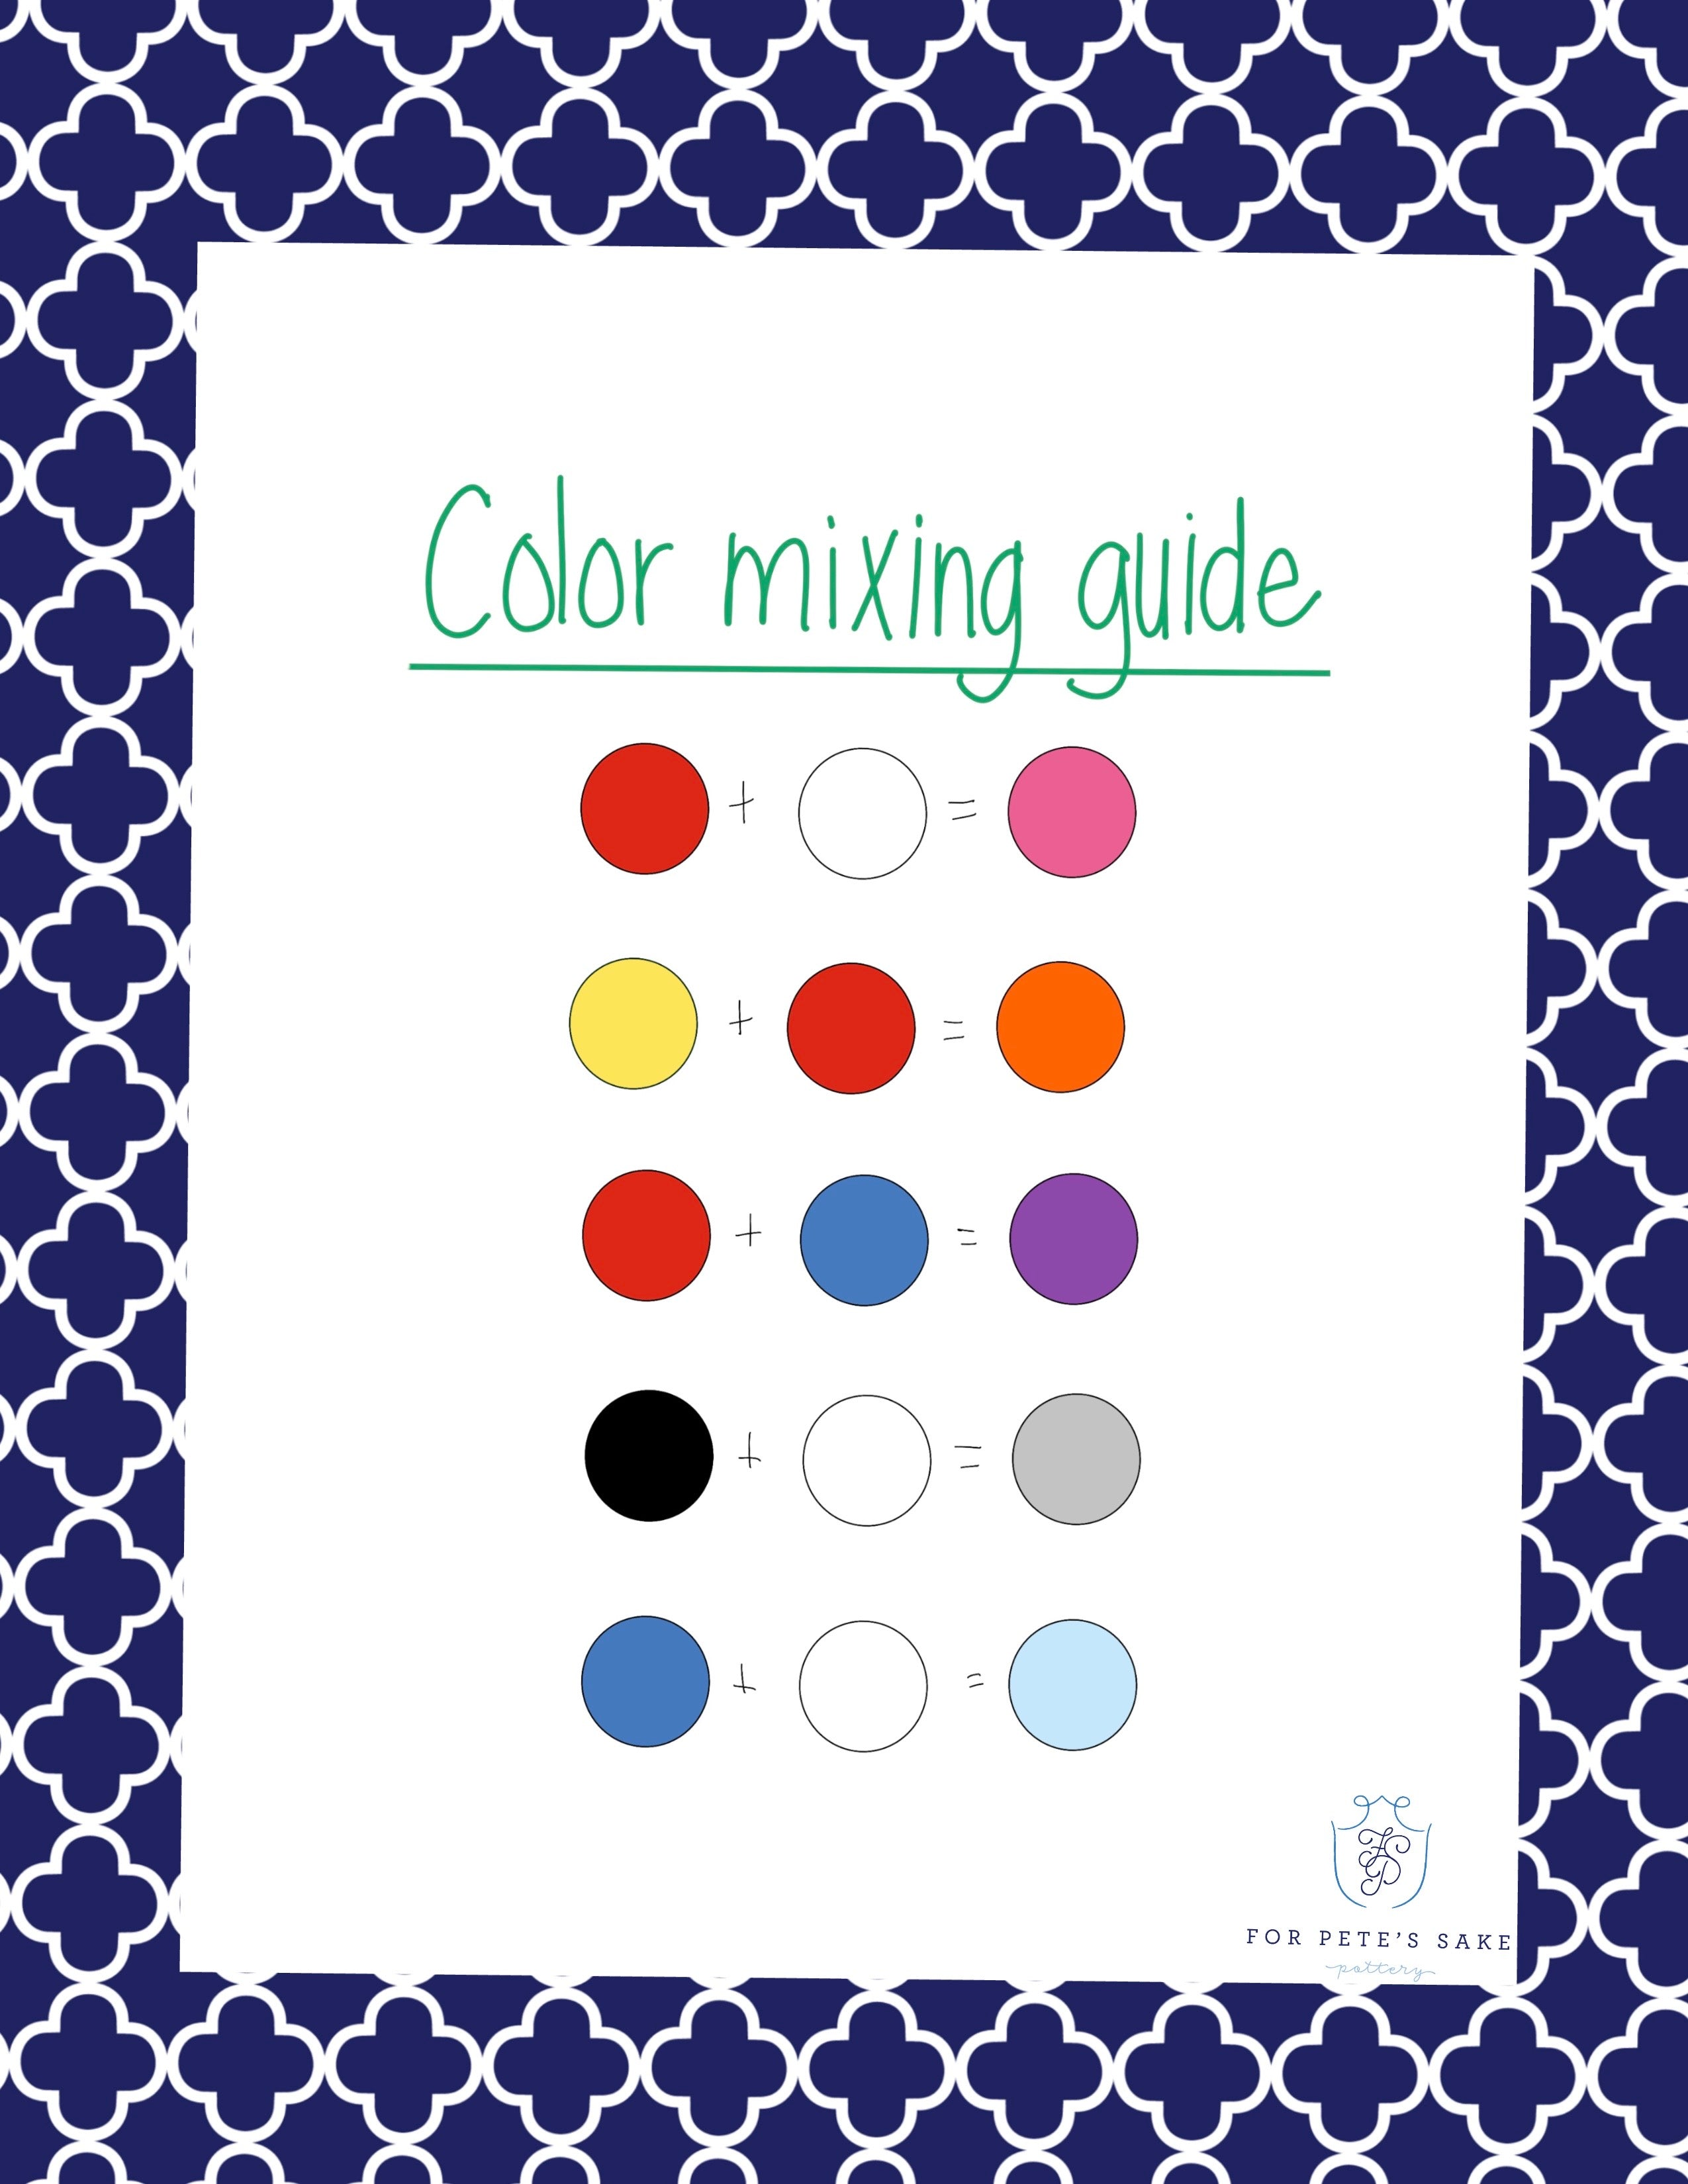 For Pete's Sake Pottery Color Mixing Guide